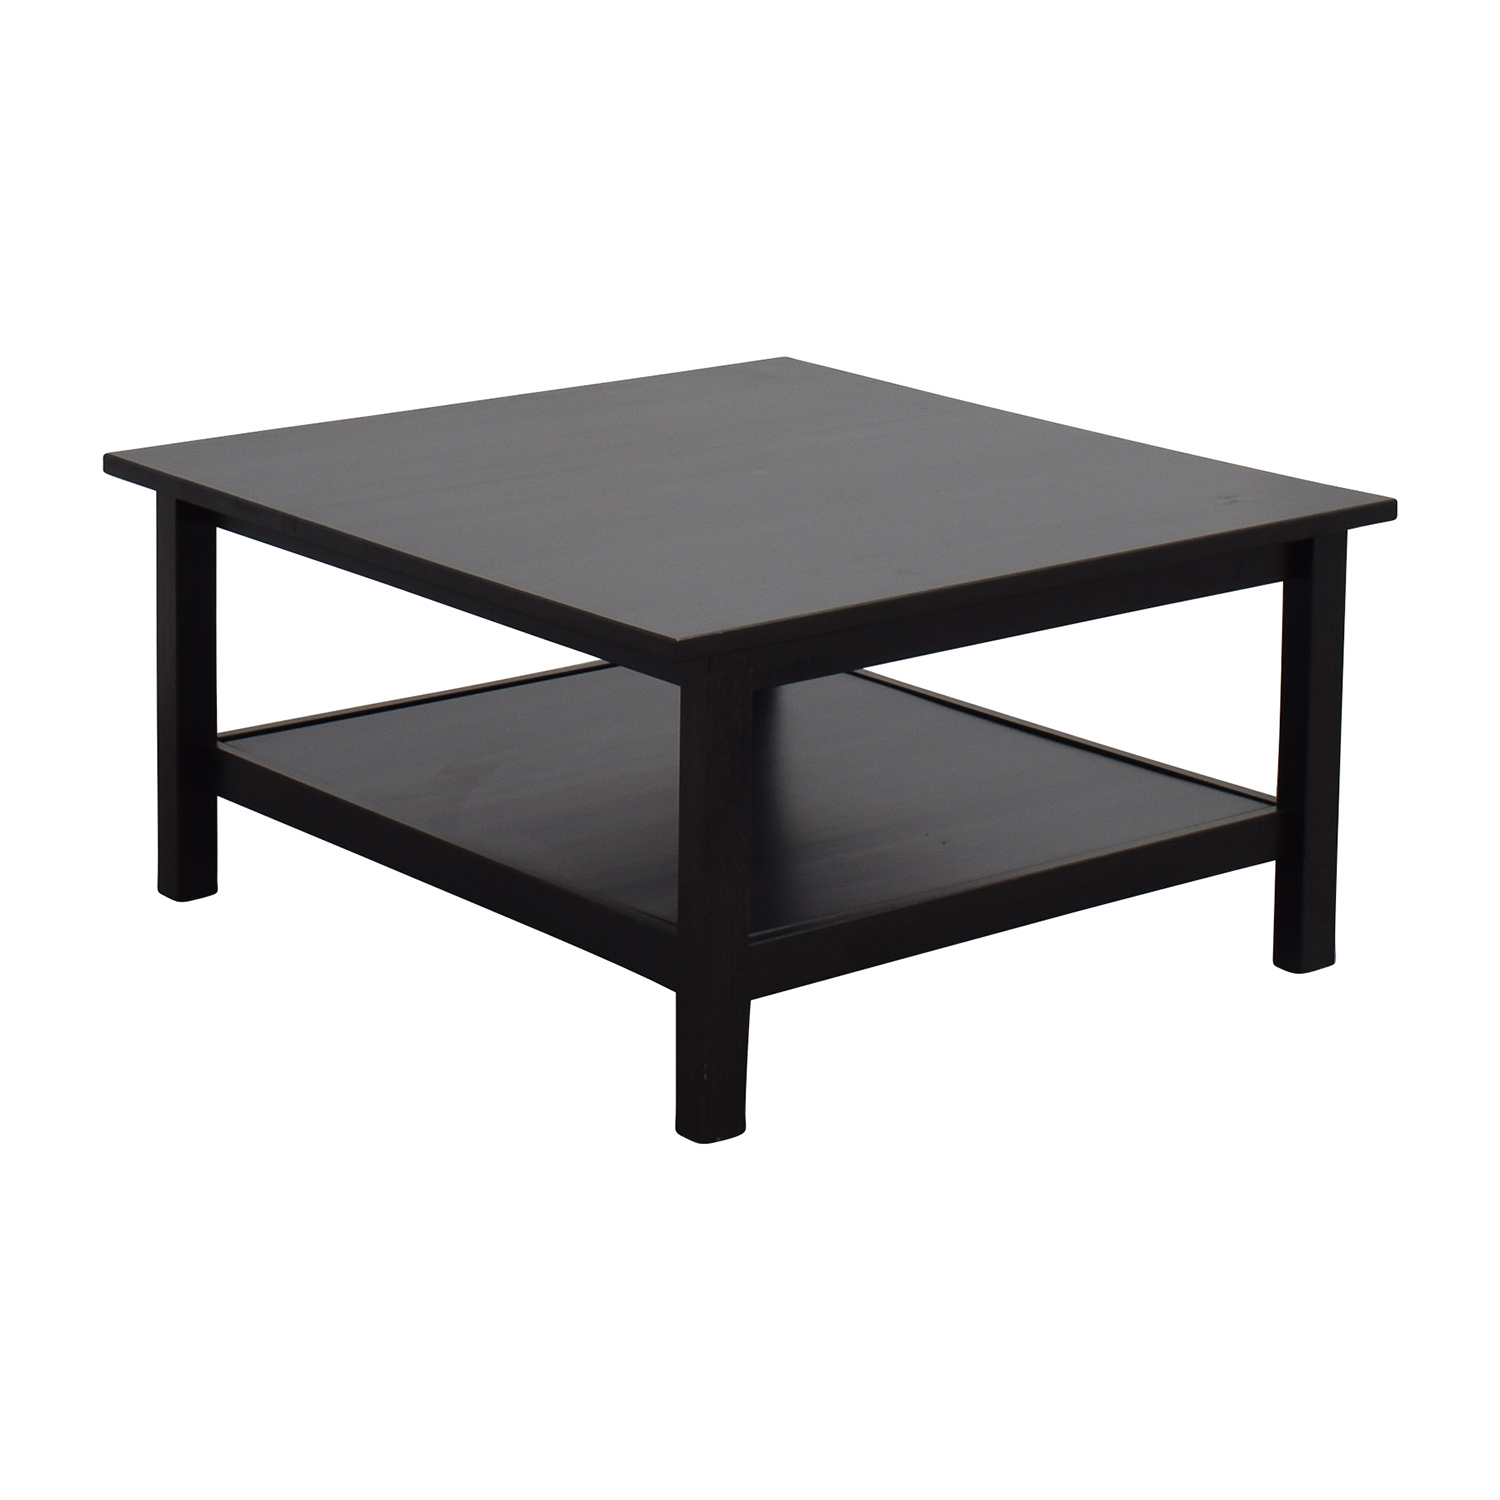 66 Off Ikea Ikea Brown Square Coffee Table Tables